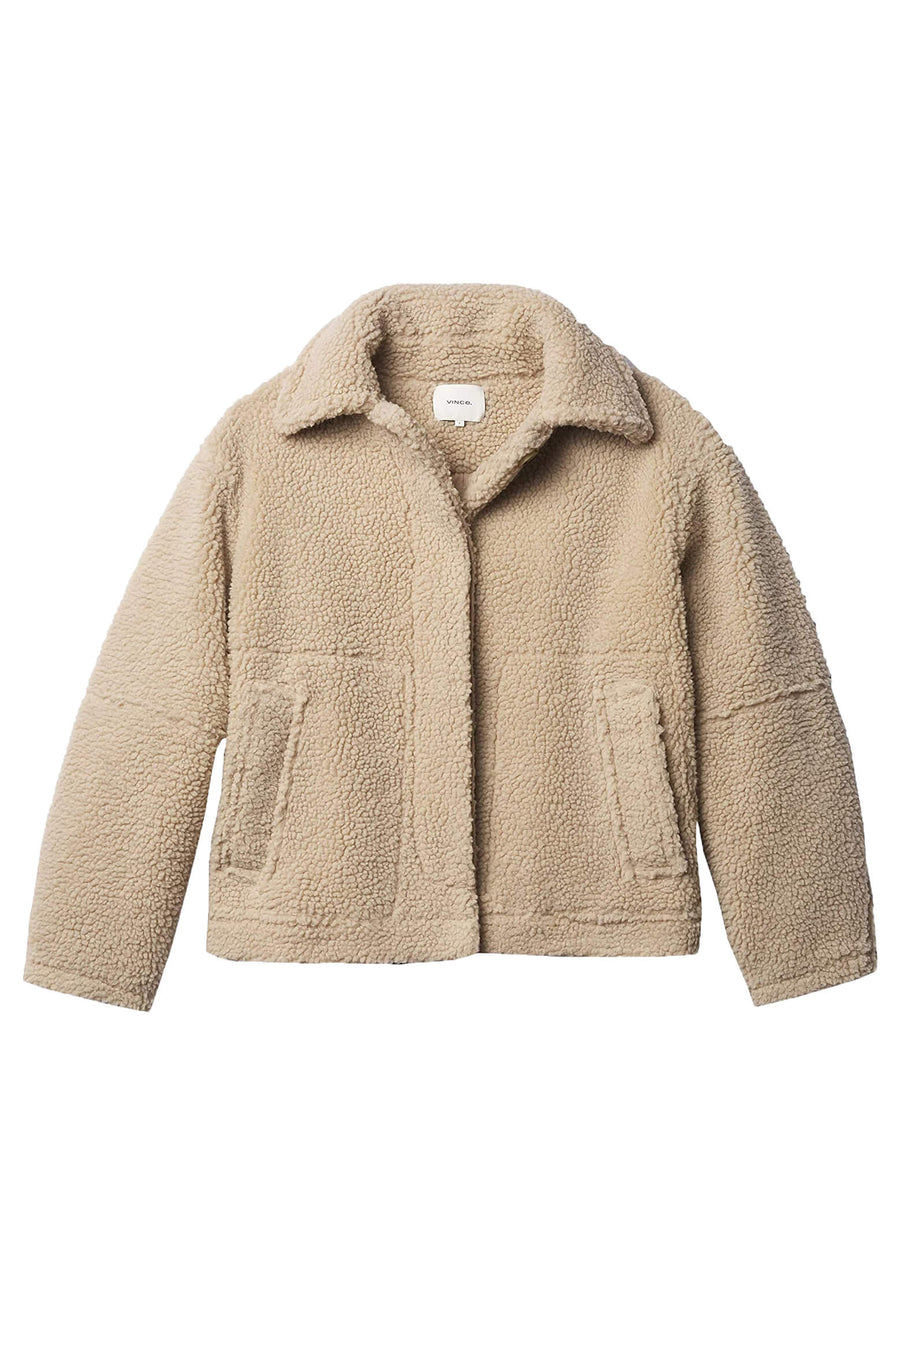 VINCE. Sherpa Jacket from The New Trend